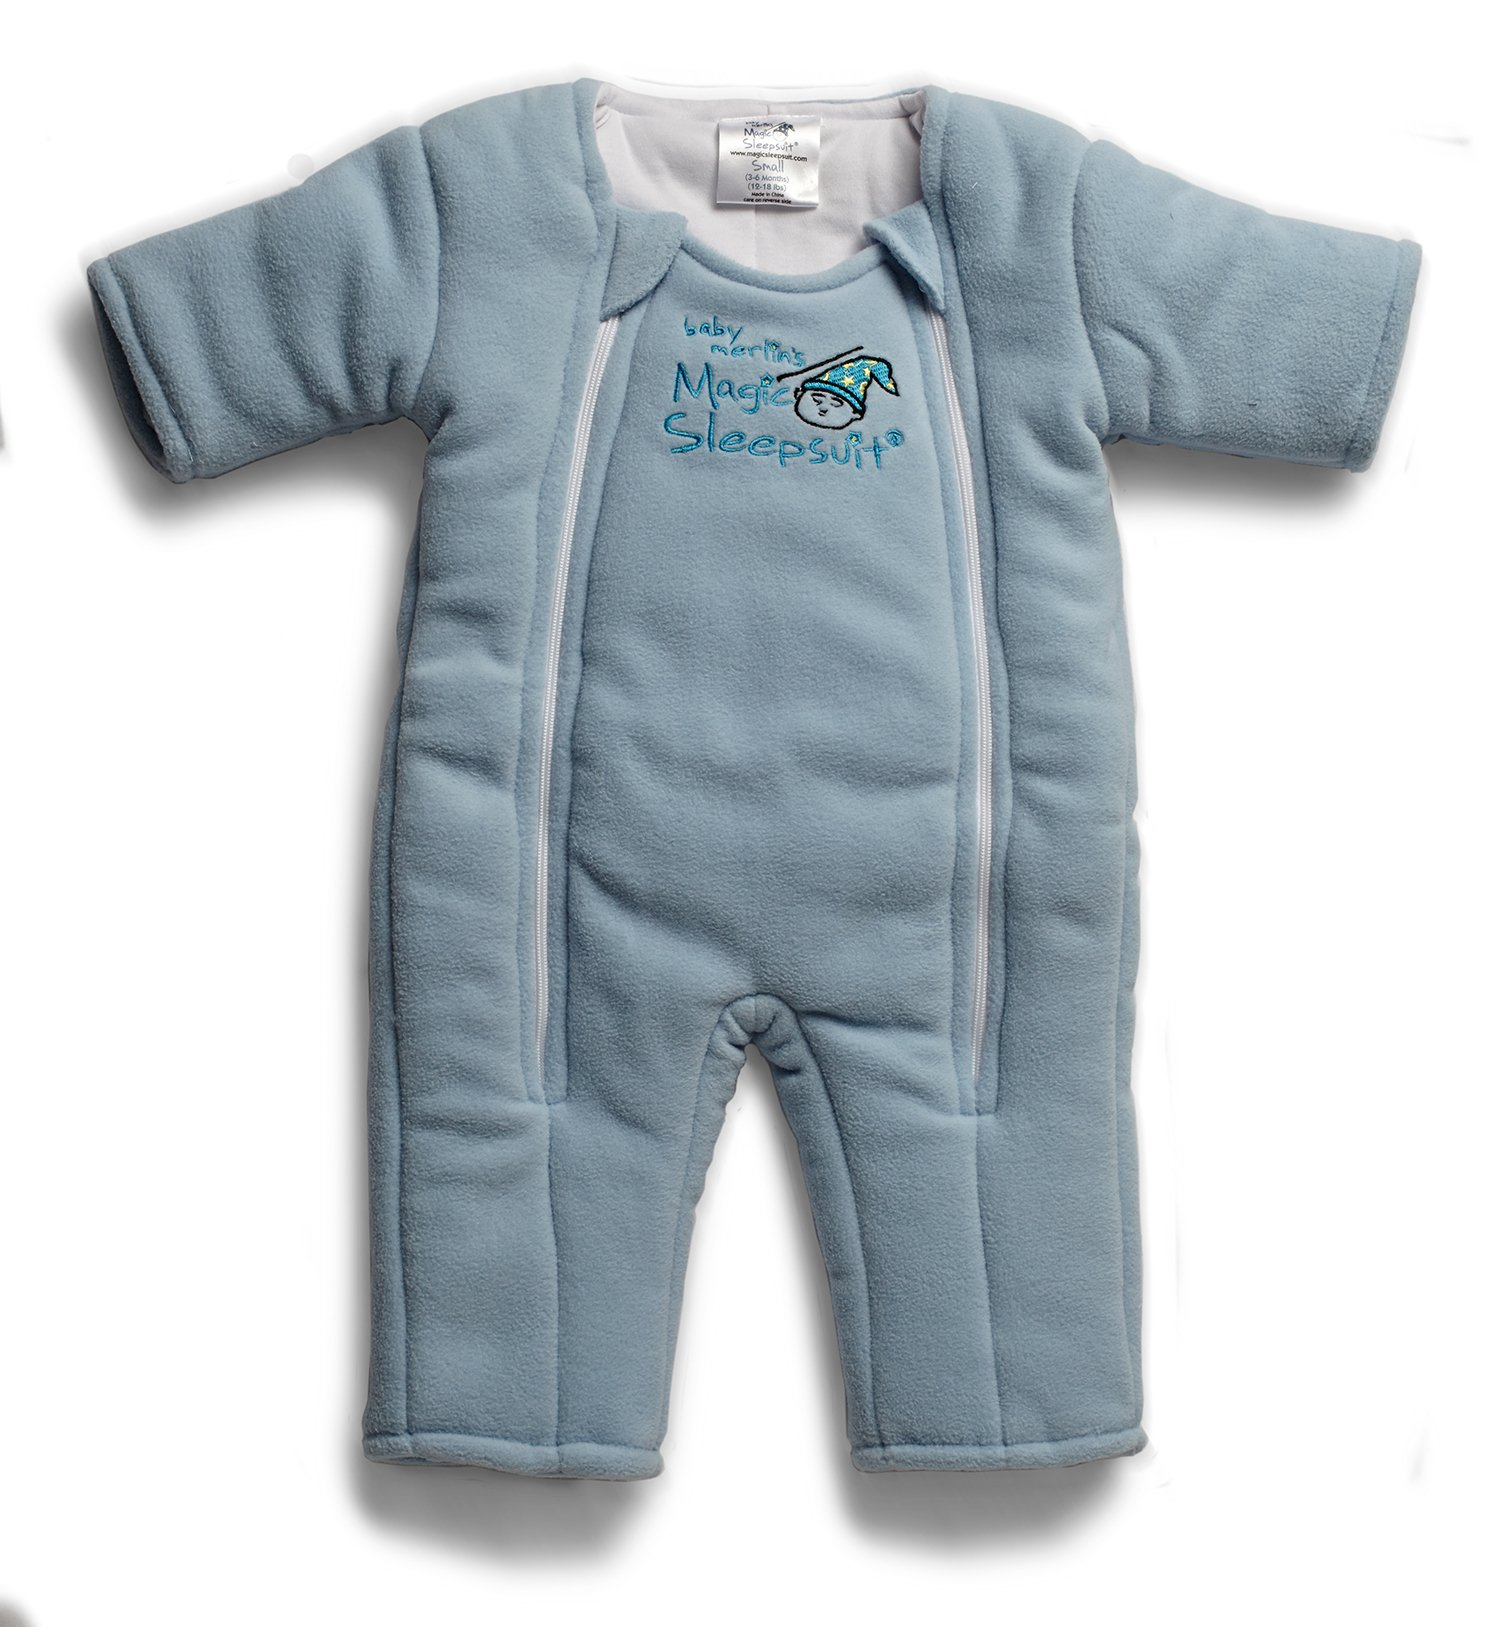 Baby Merlin's Magic Sleepsuit - Swaddle Transition Product - Microfleece - Blue - 3-6 months